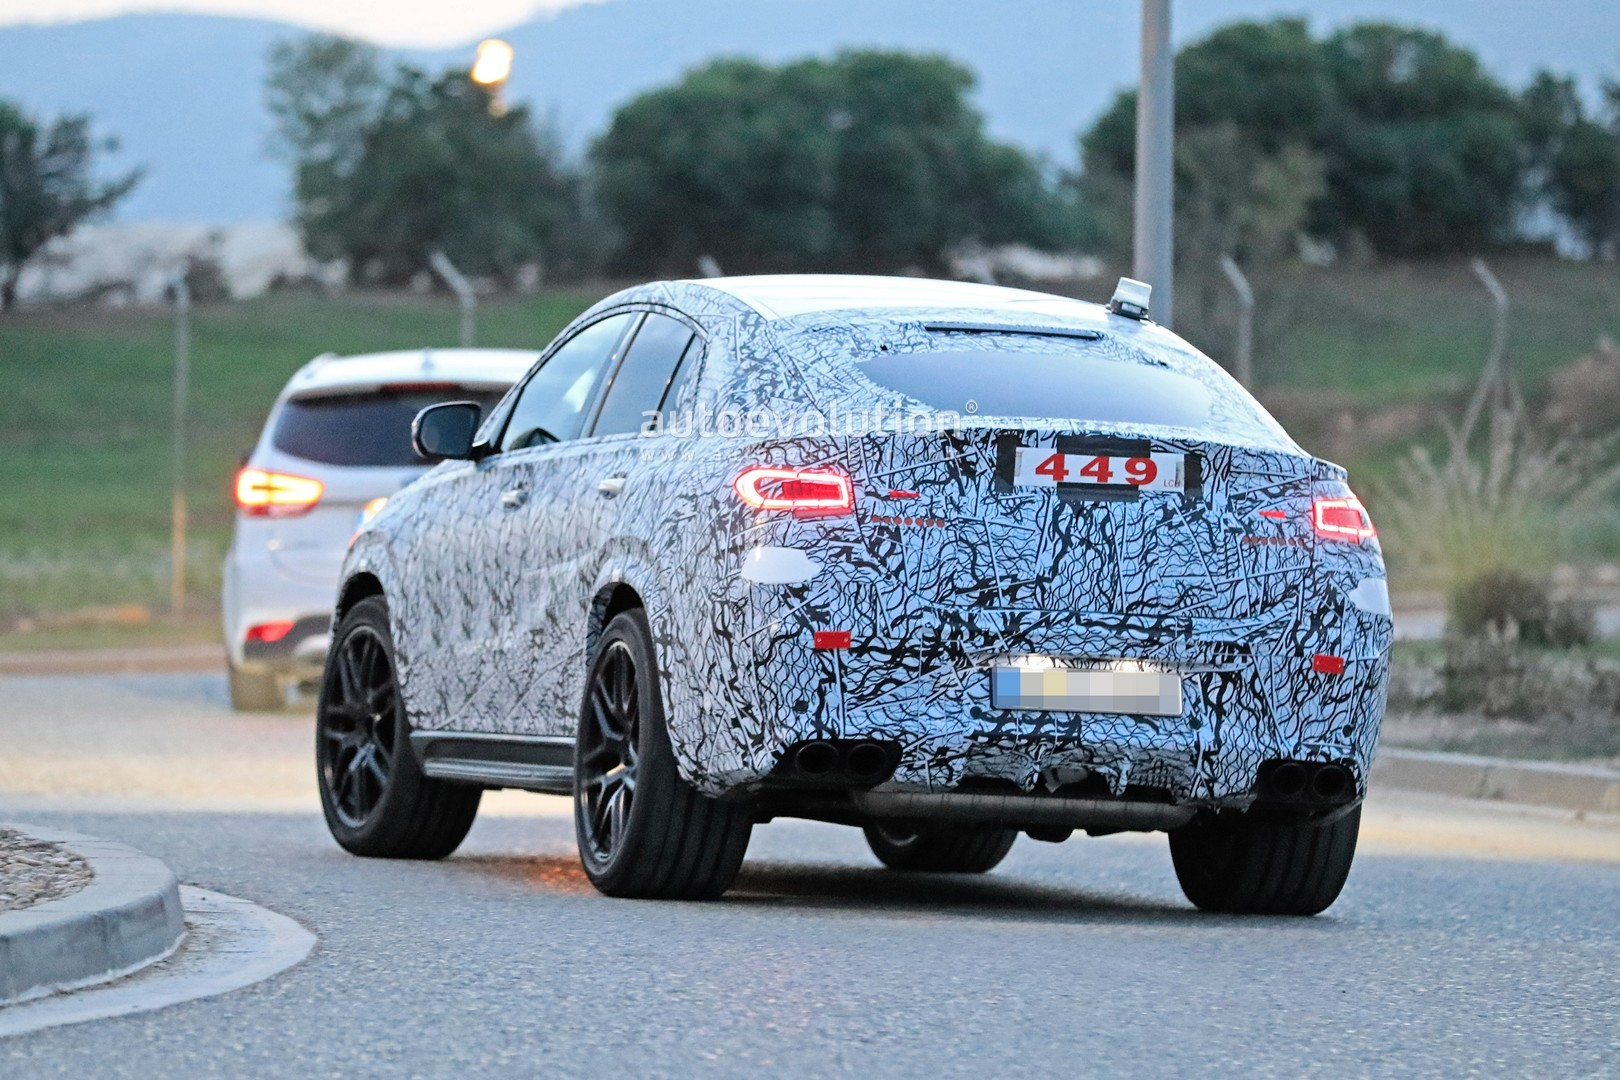 mercedes-a​mg-gle-53-​coupe-make​s-spyshot-​debut-with​-quad-exha​ust-tips_8